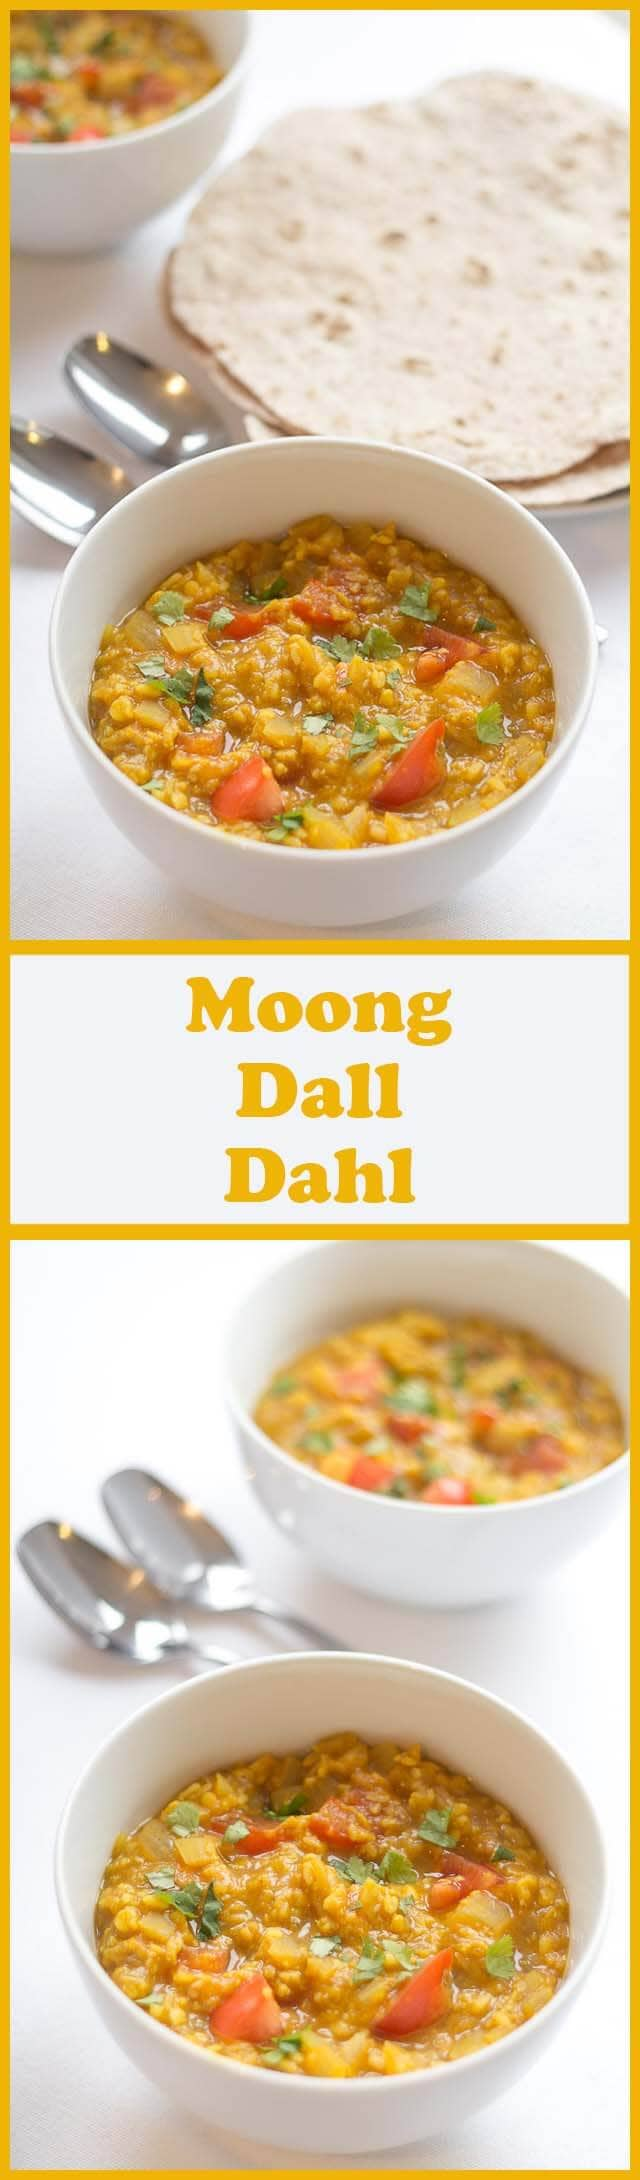 This Mung Bean (Moong Dall) Dahl is an absolutely delicious curry. Vegan and packed with beautiful tasting spices that tantalise the taste buds, it's a perfect quick healthy meal. Plus, for those of us watching our waistlines, for a curry coming in at only 259 calories per serving, it's a bonus!